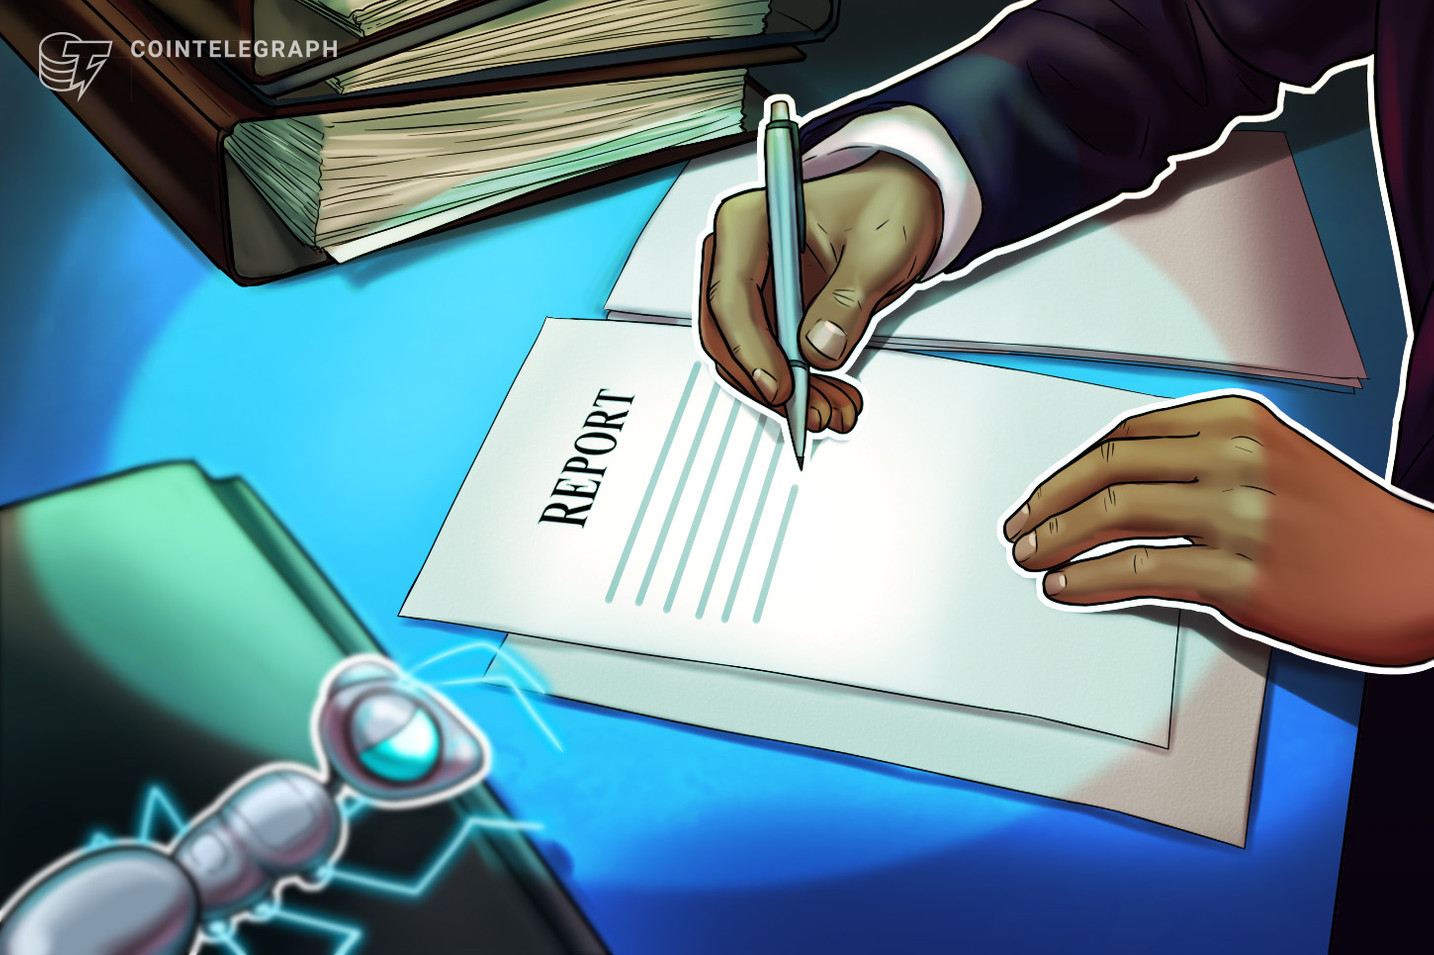 European Investment Bank reportedly to issue bonds with blockchain tech